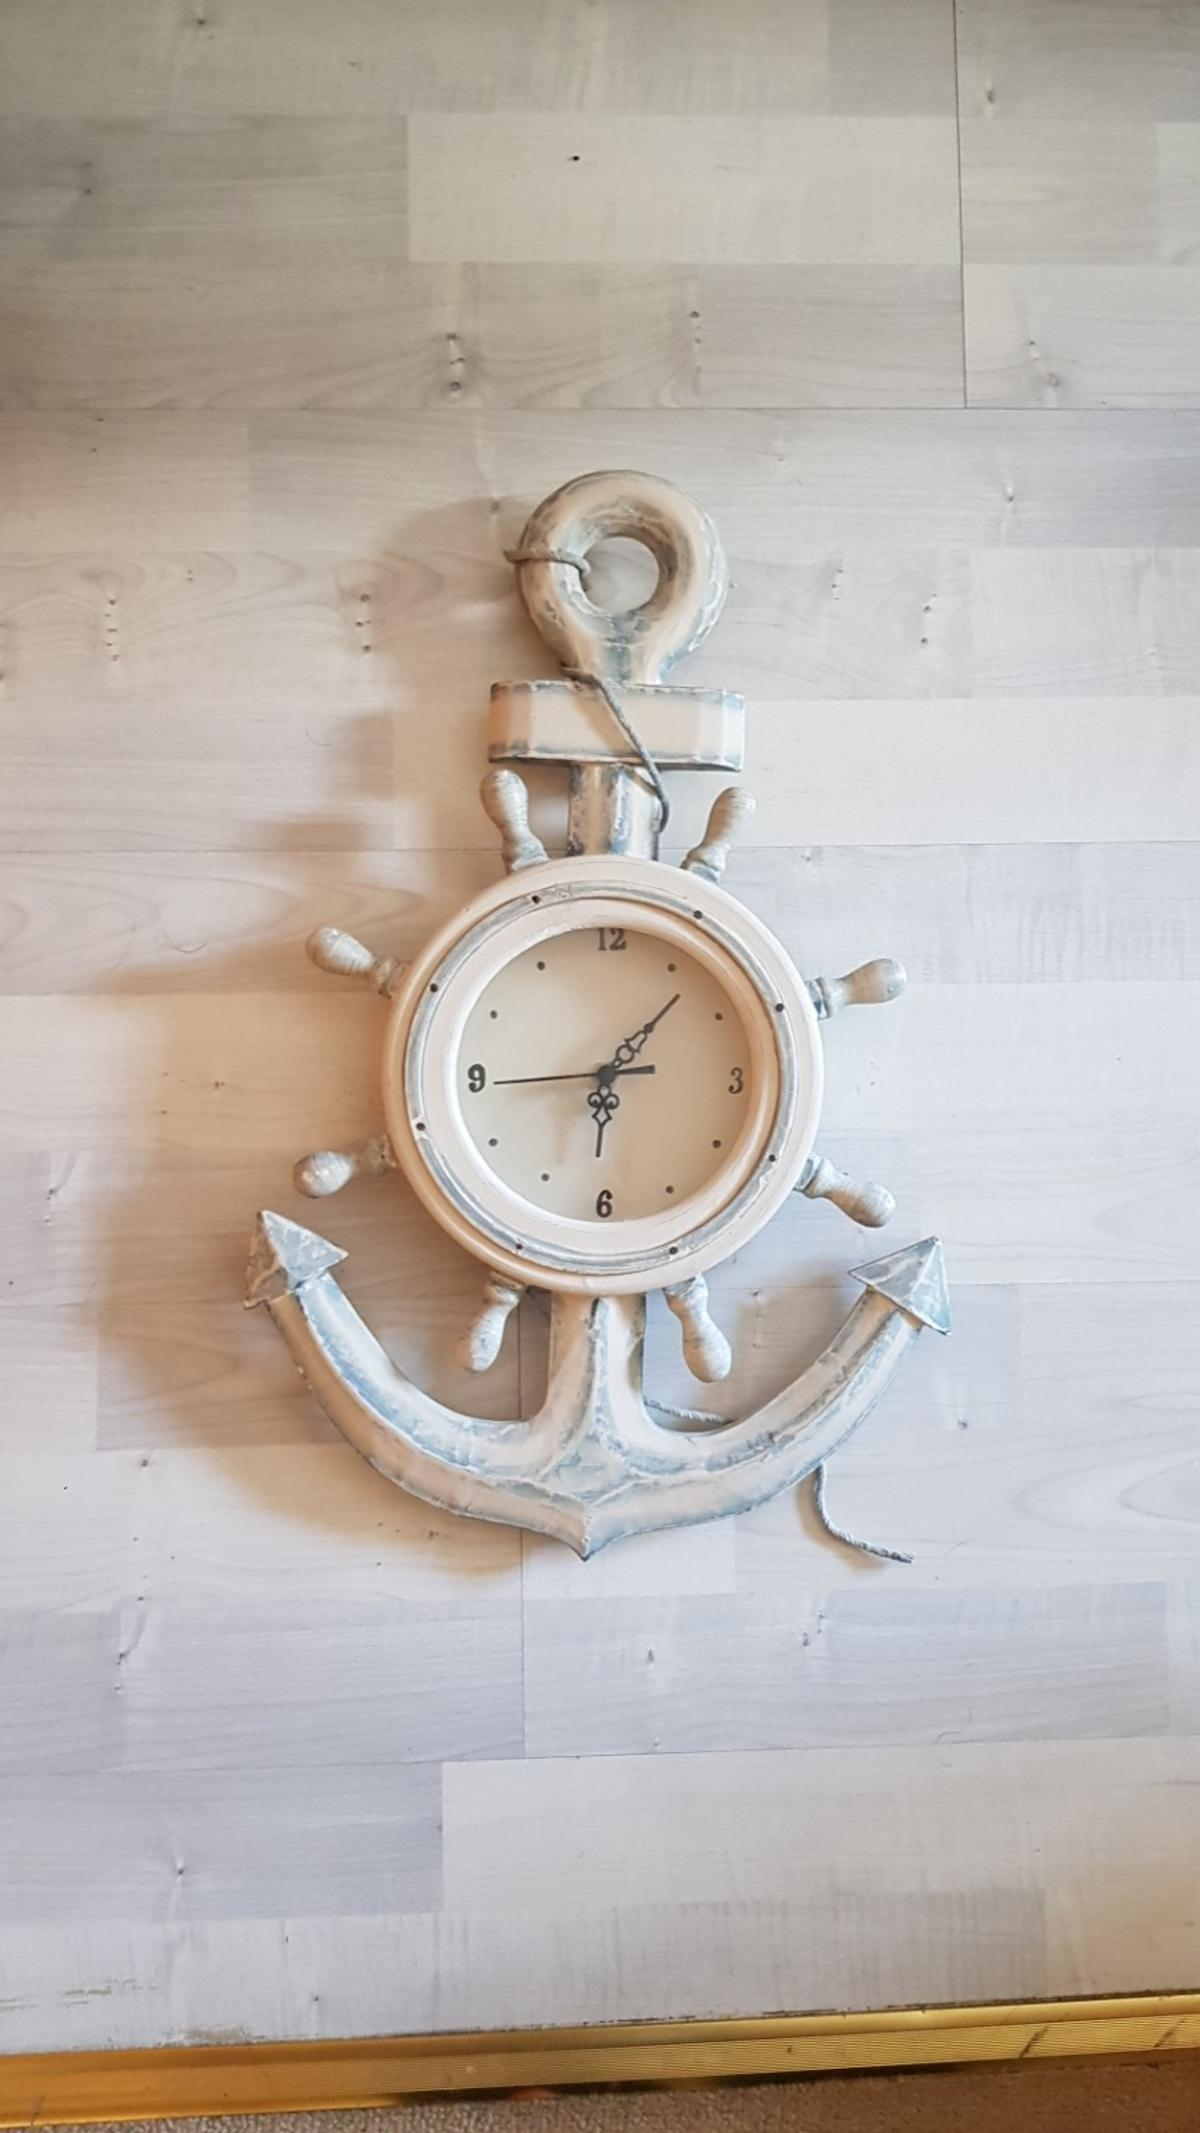 Was once used in a child's room whose theme was ships, under water and sailors.  Approximately 45cm by 30cm